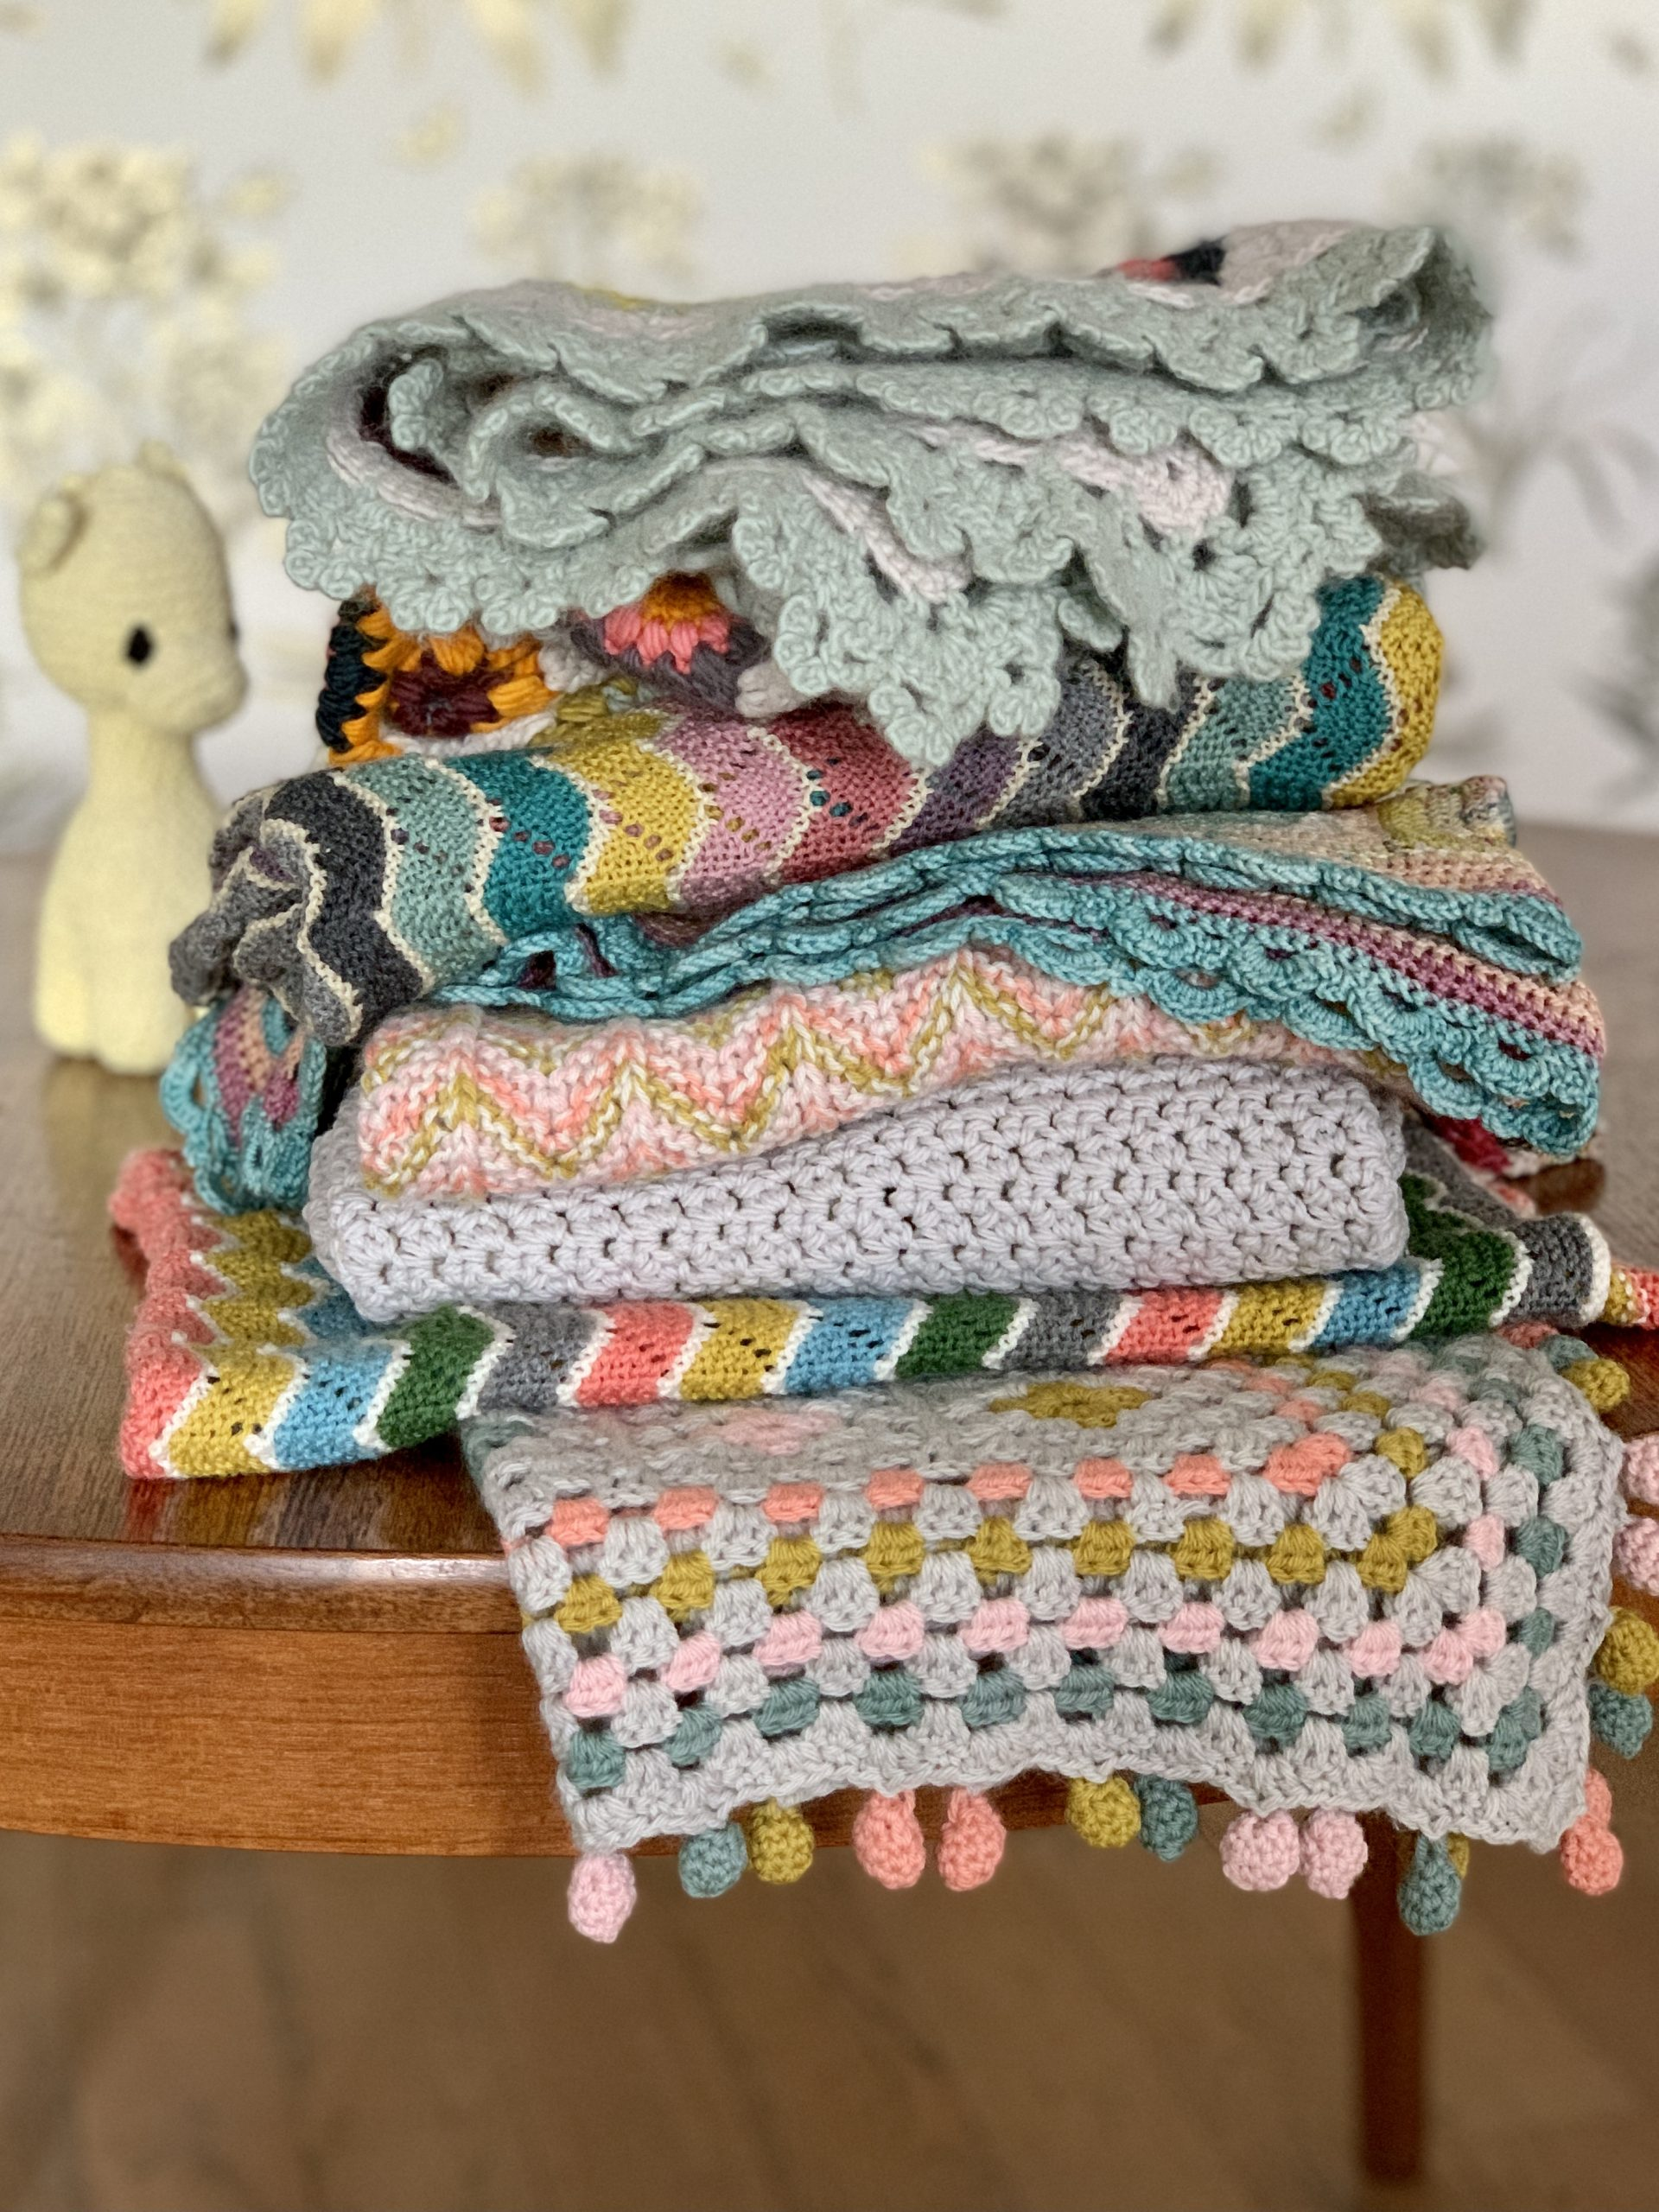 Comfort in knitting &crochet with beautiful blankets